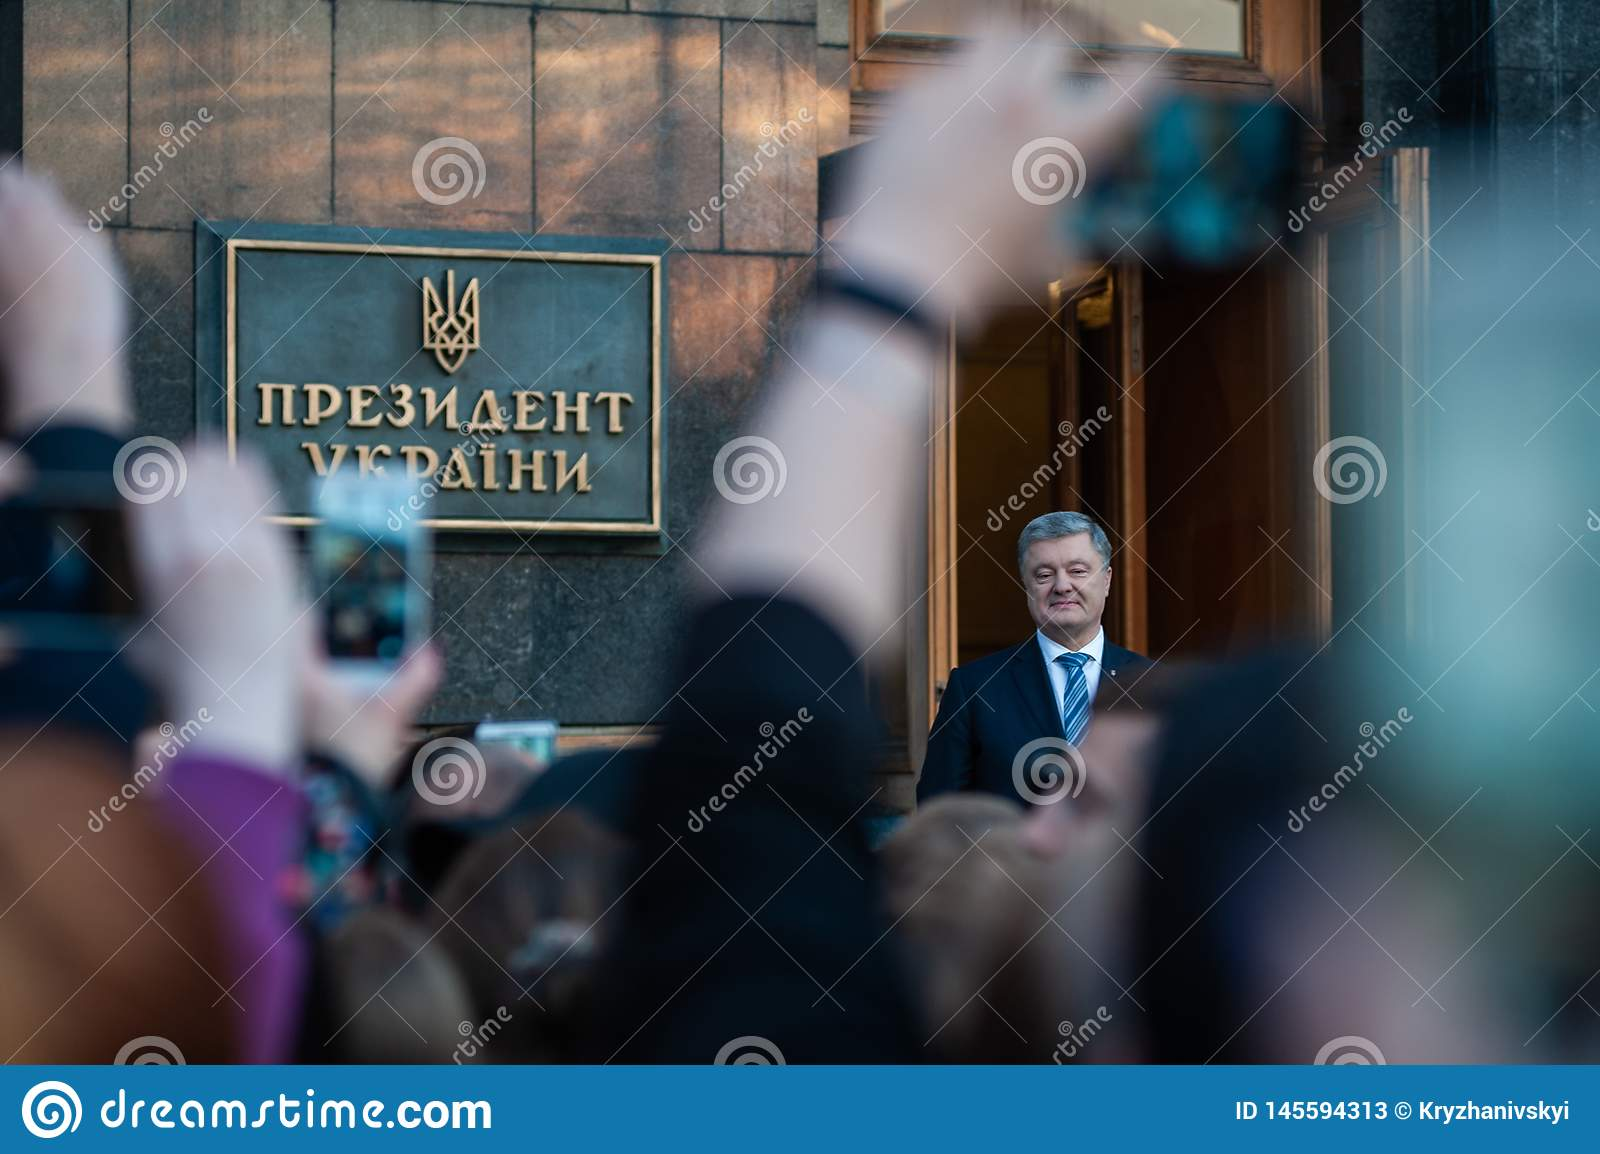 Poroshenko  thanked Ukrainians who came to thank him and support him